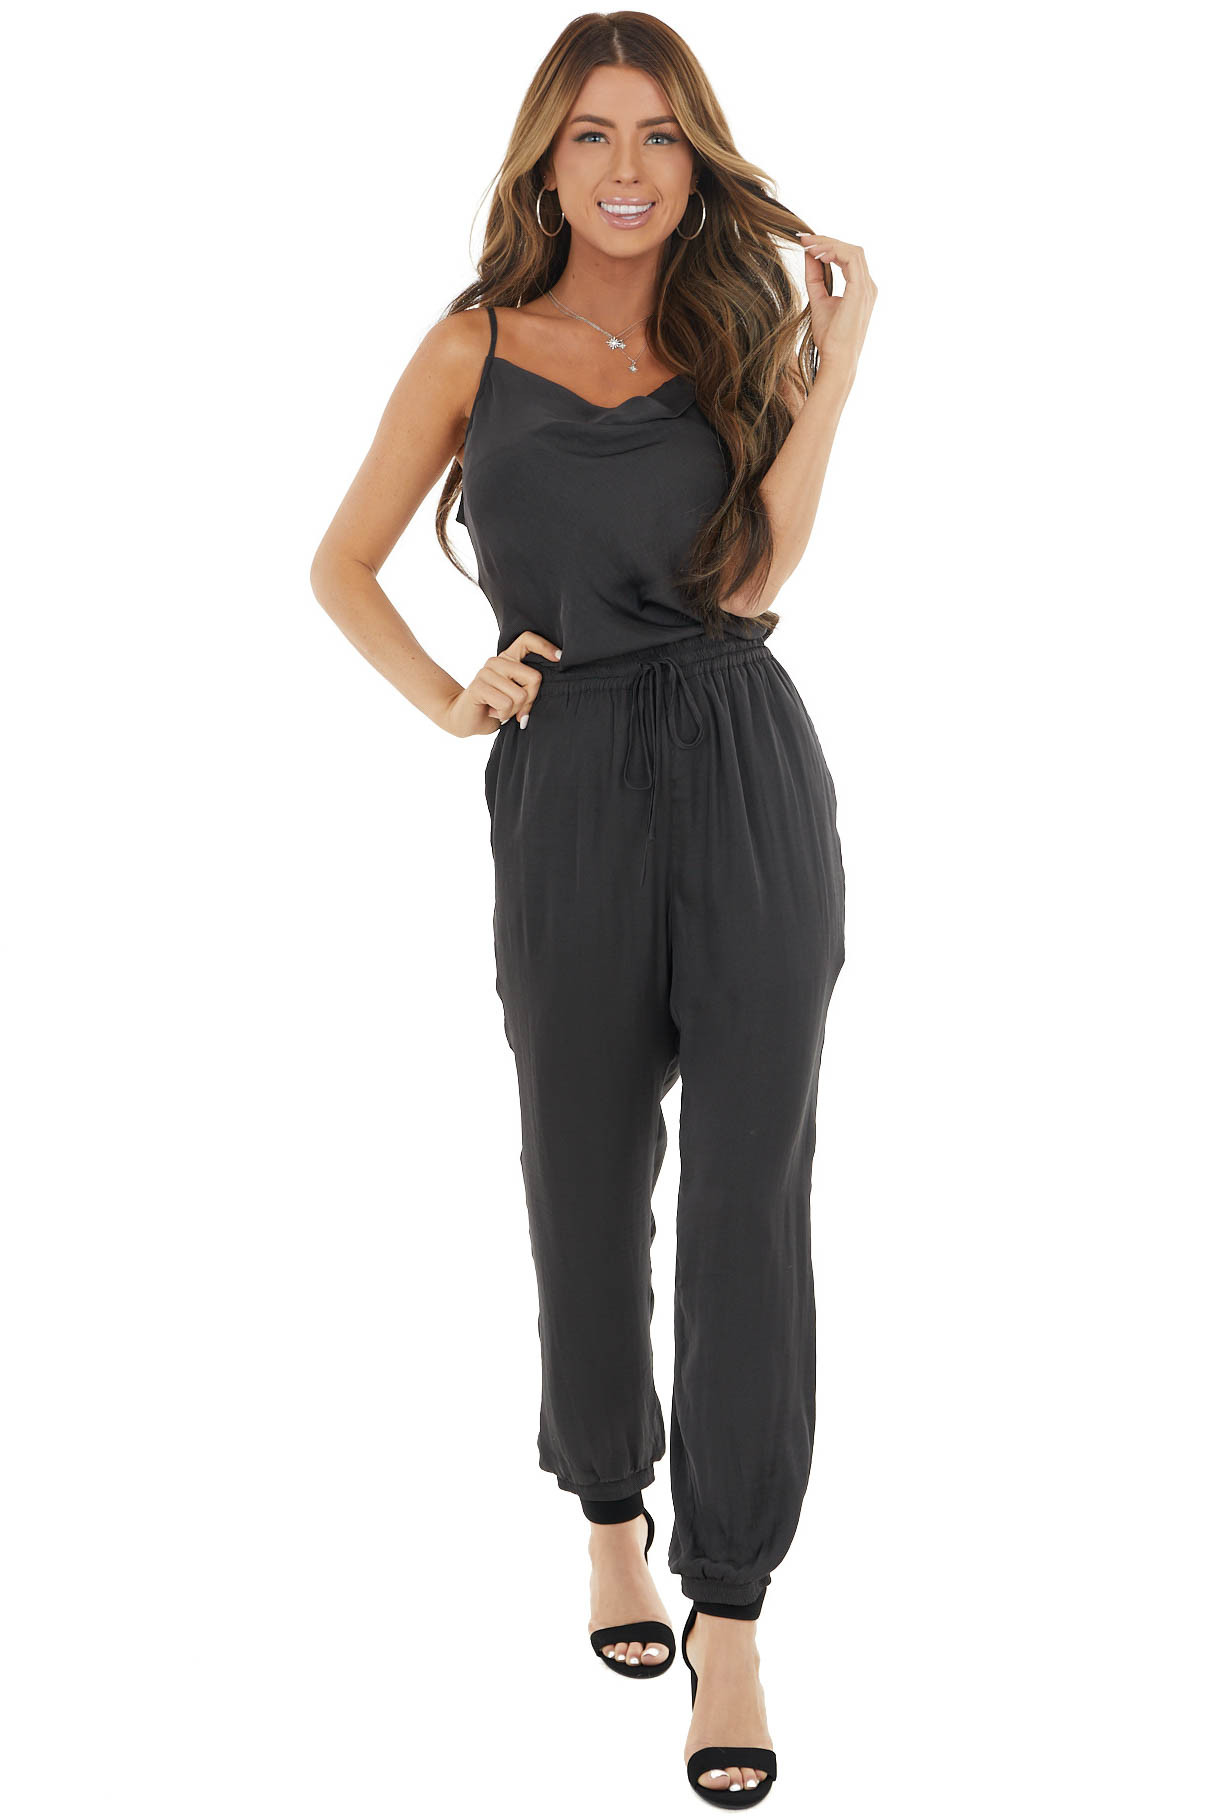 Graphite Sleeveless Silky Woven Jumpsuit with Elastic Waist